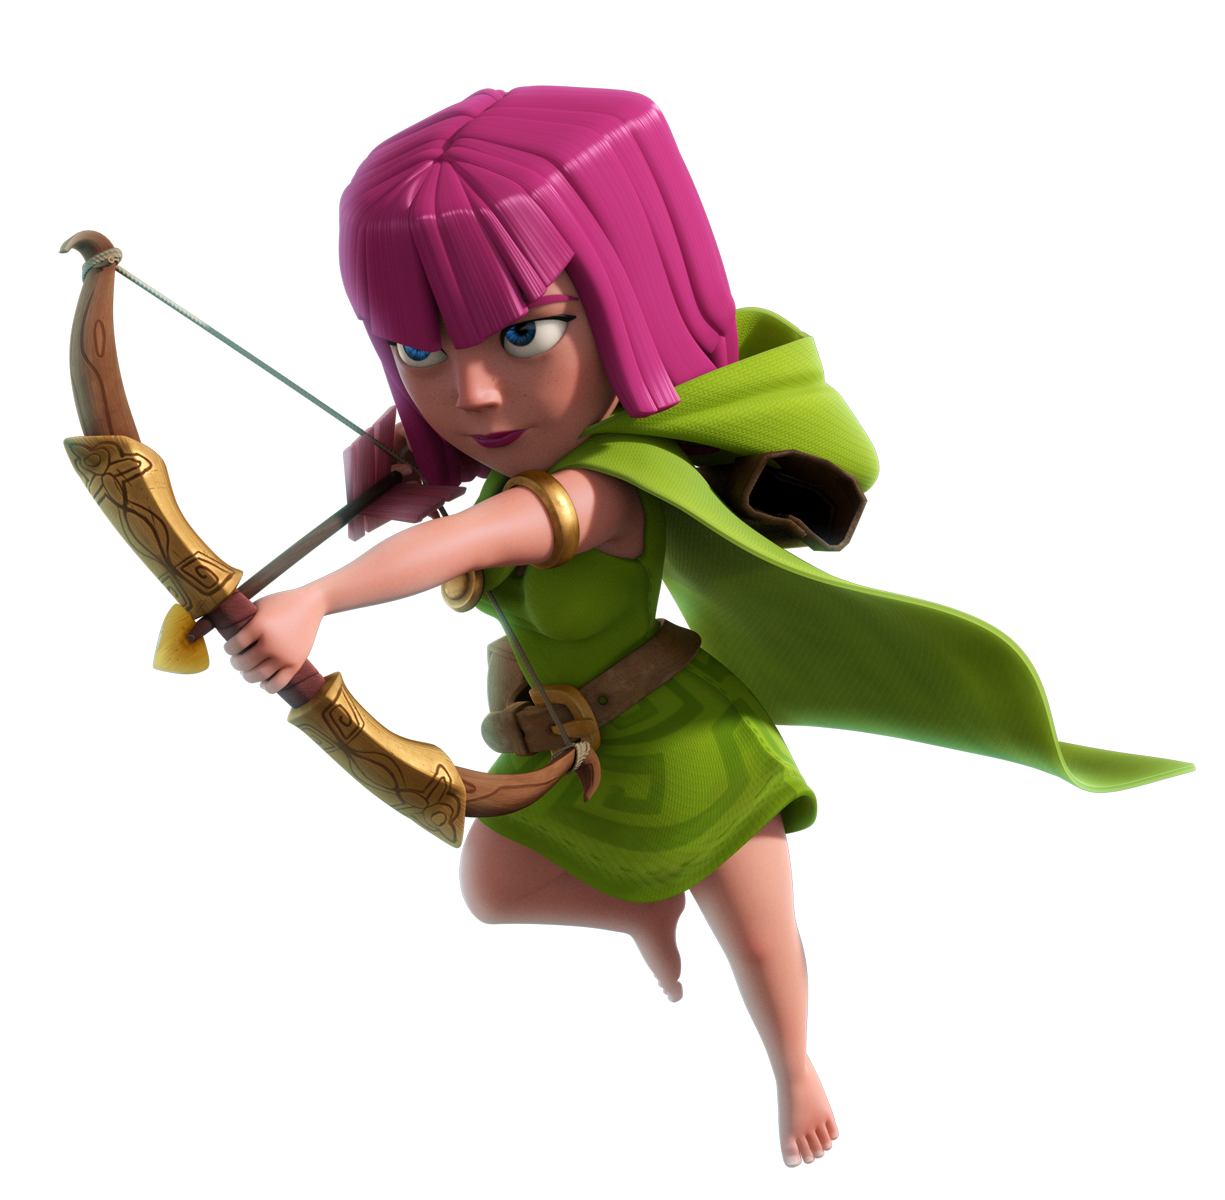 Clash Of Clans Archer Png PNG Image - Clash Of Clans HD PNG